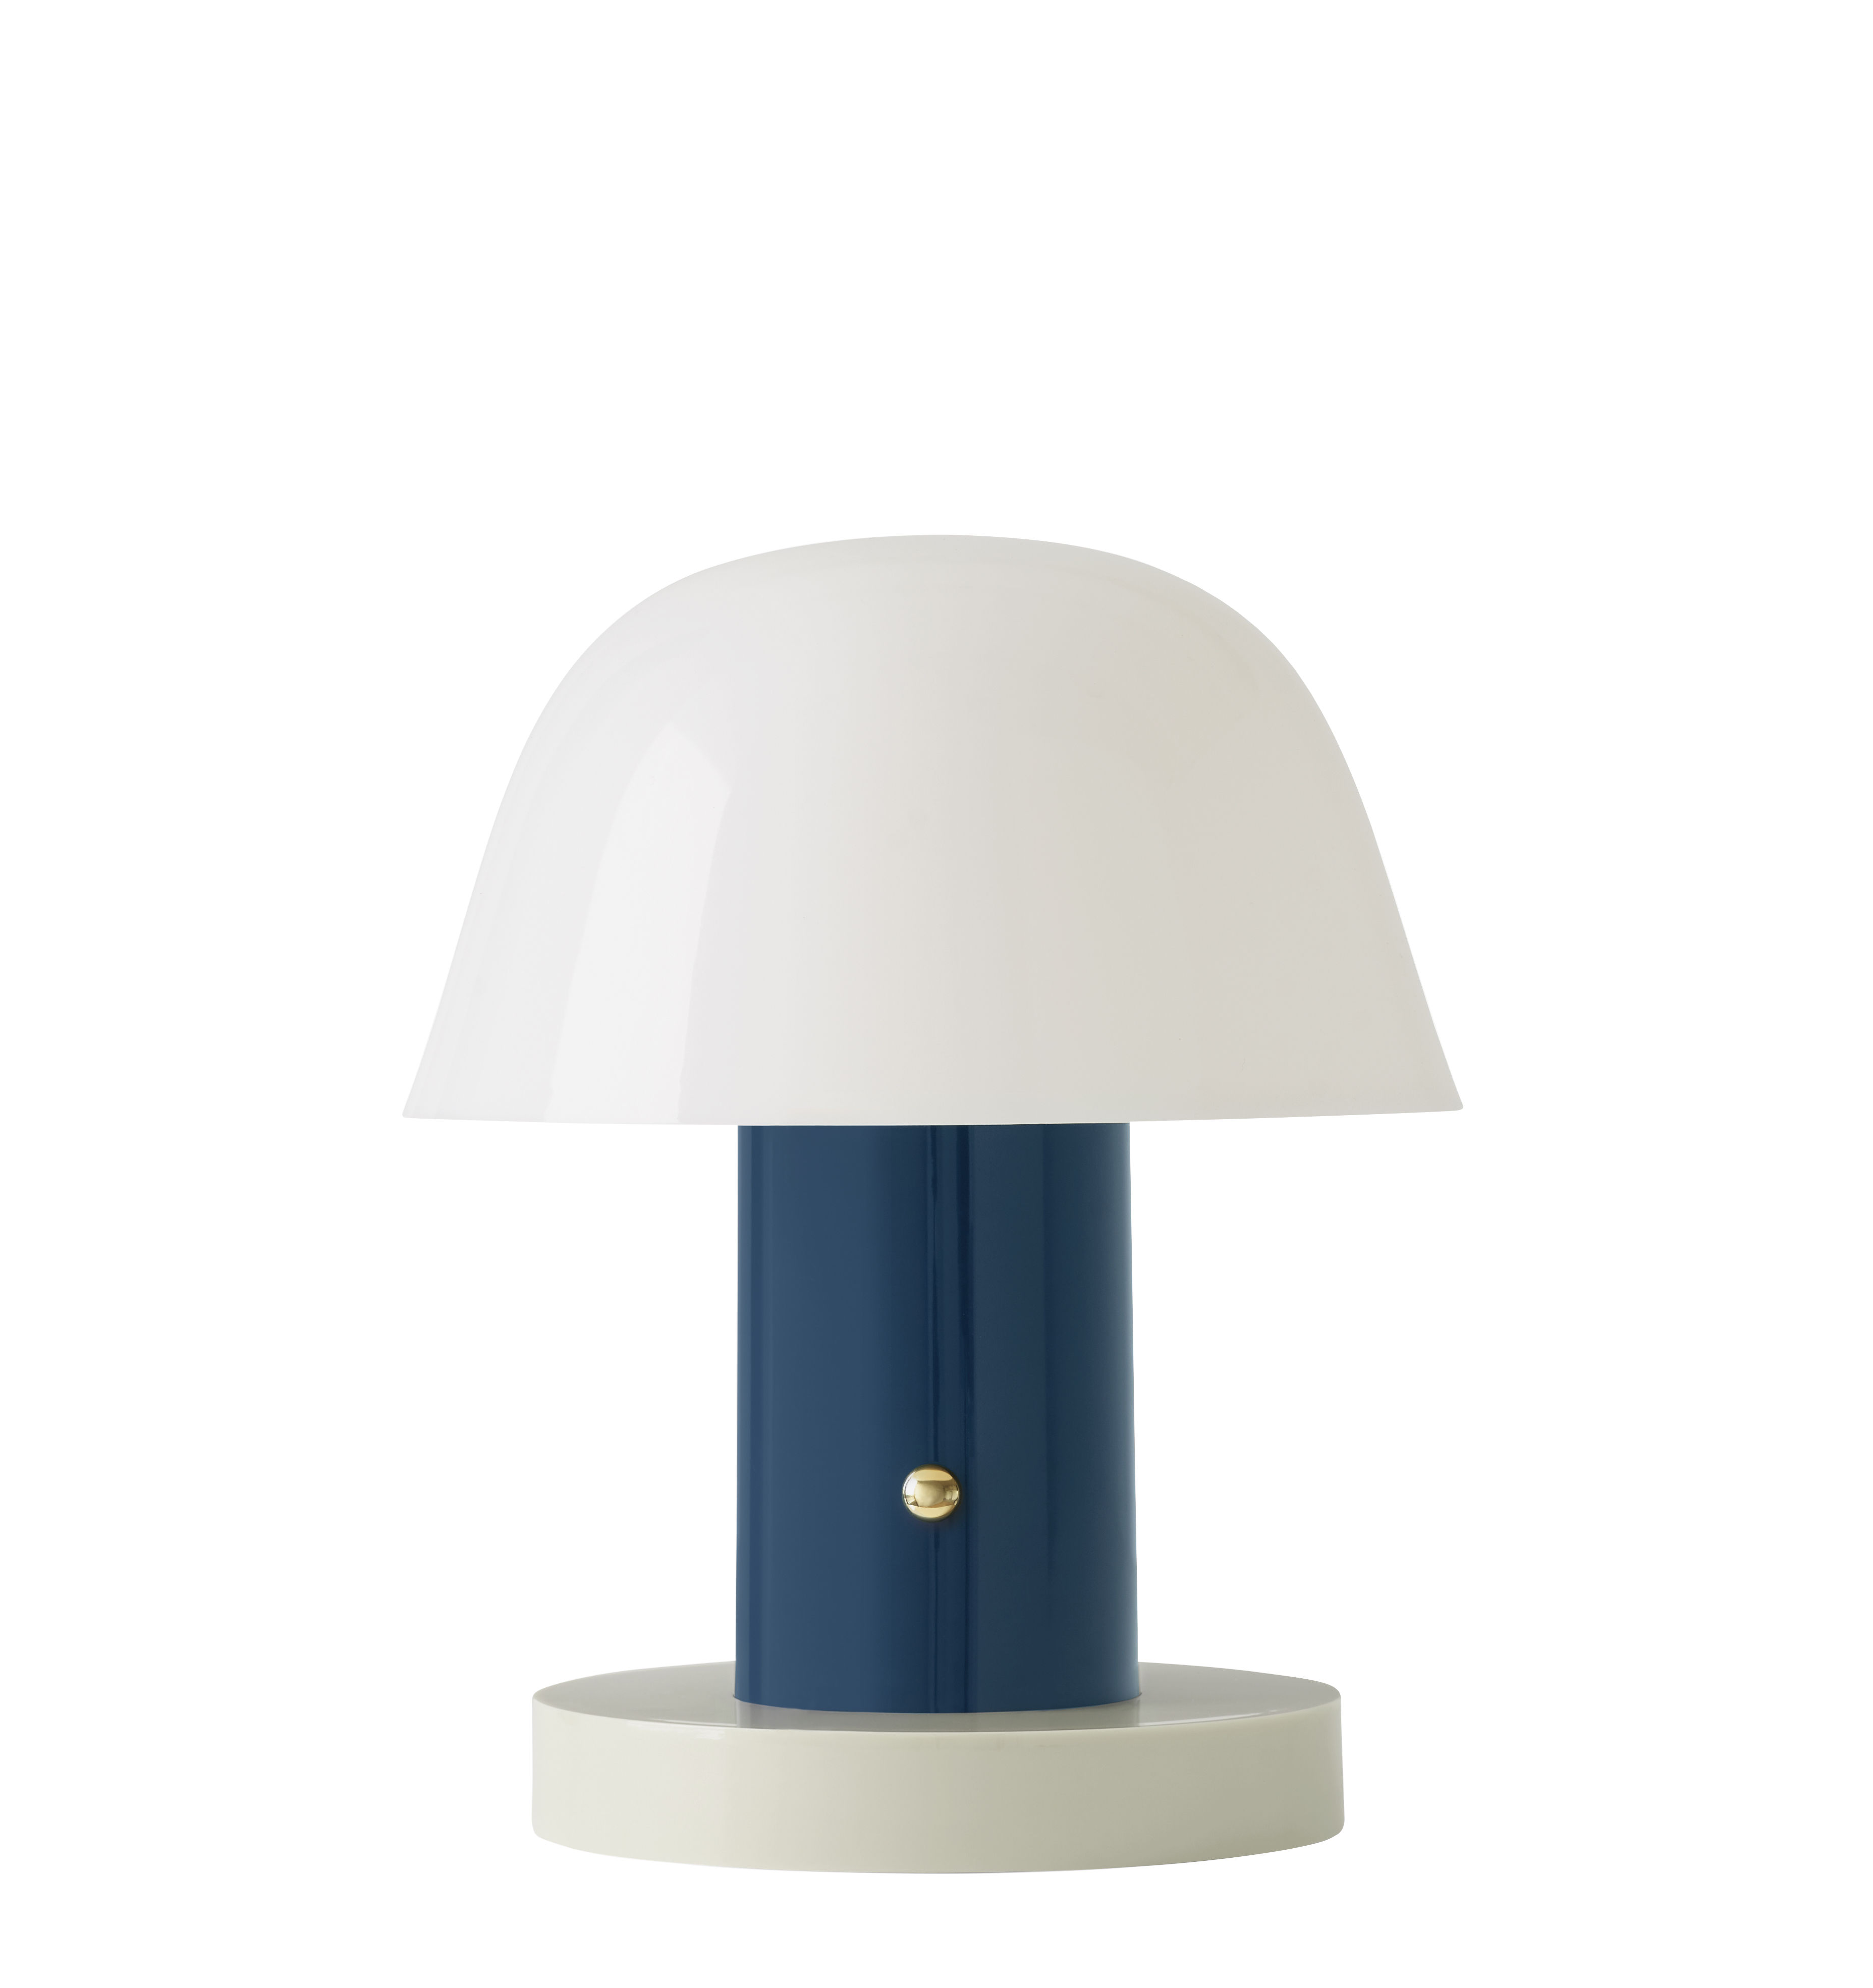 Lighting - Table Lamps - Setago  JH27 Wireless lamp - / LED - by Jaime Hayon by &tradition - Twilight blue / Sand base - Moulded polycarbonate